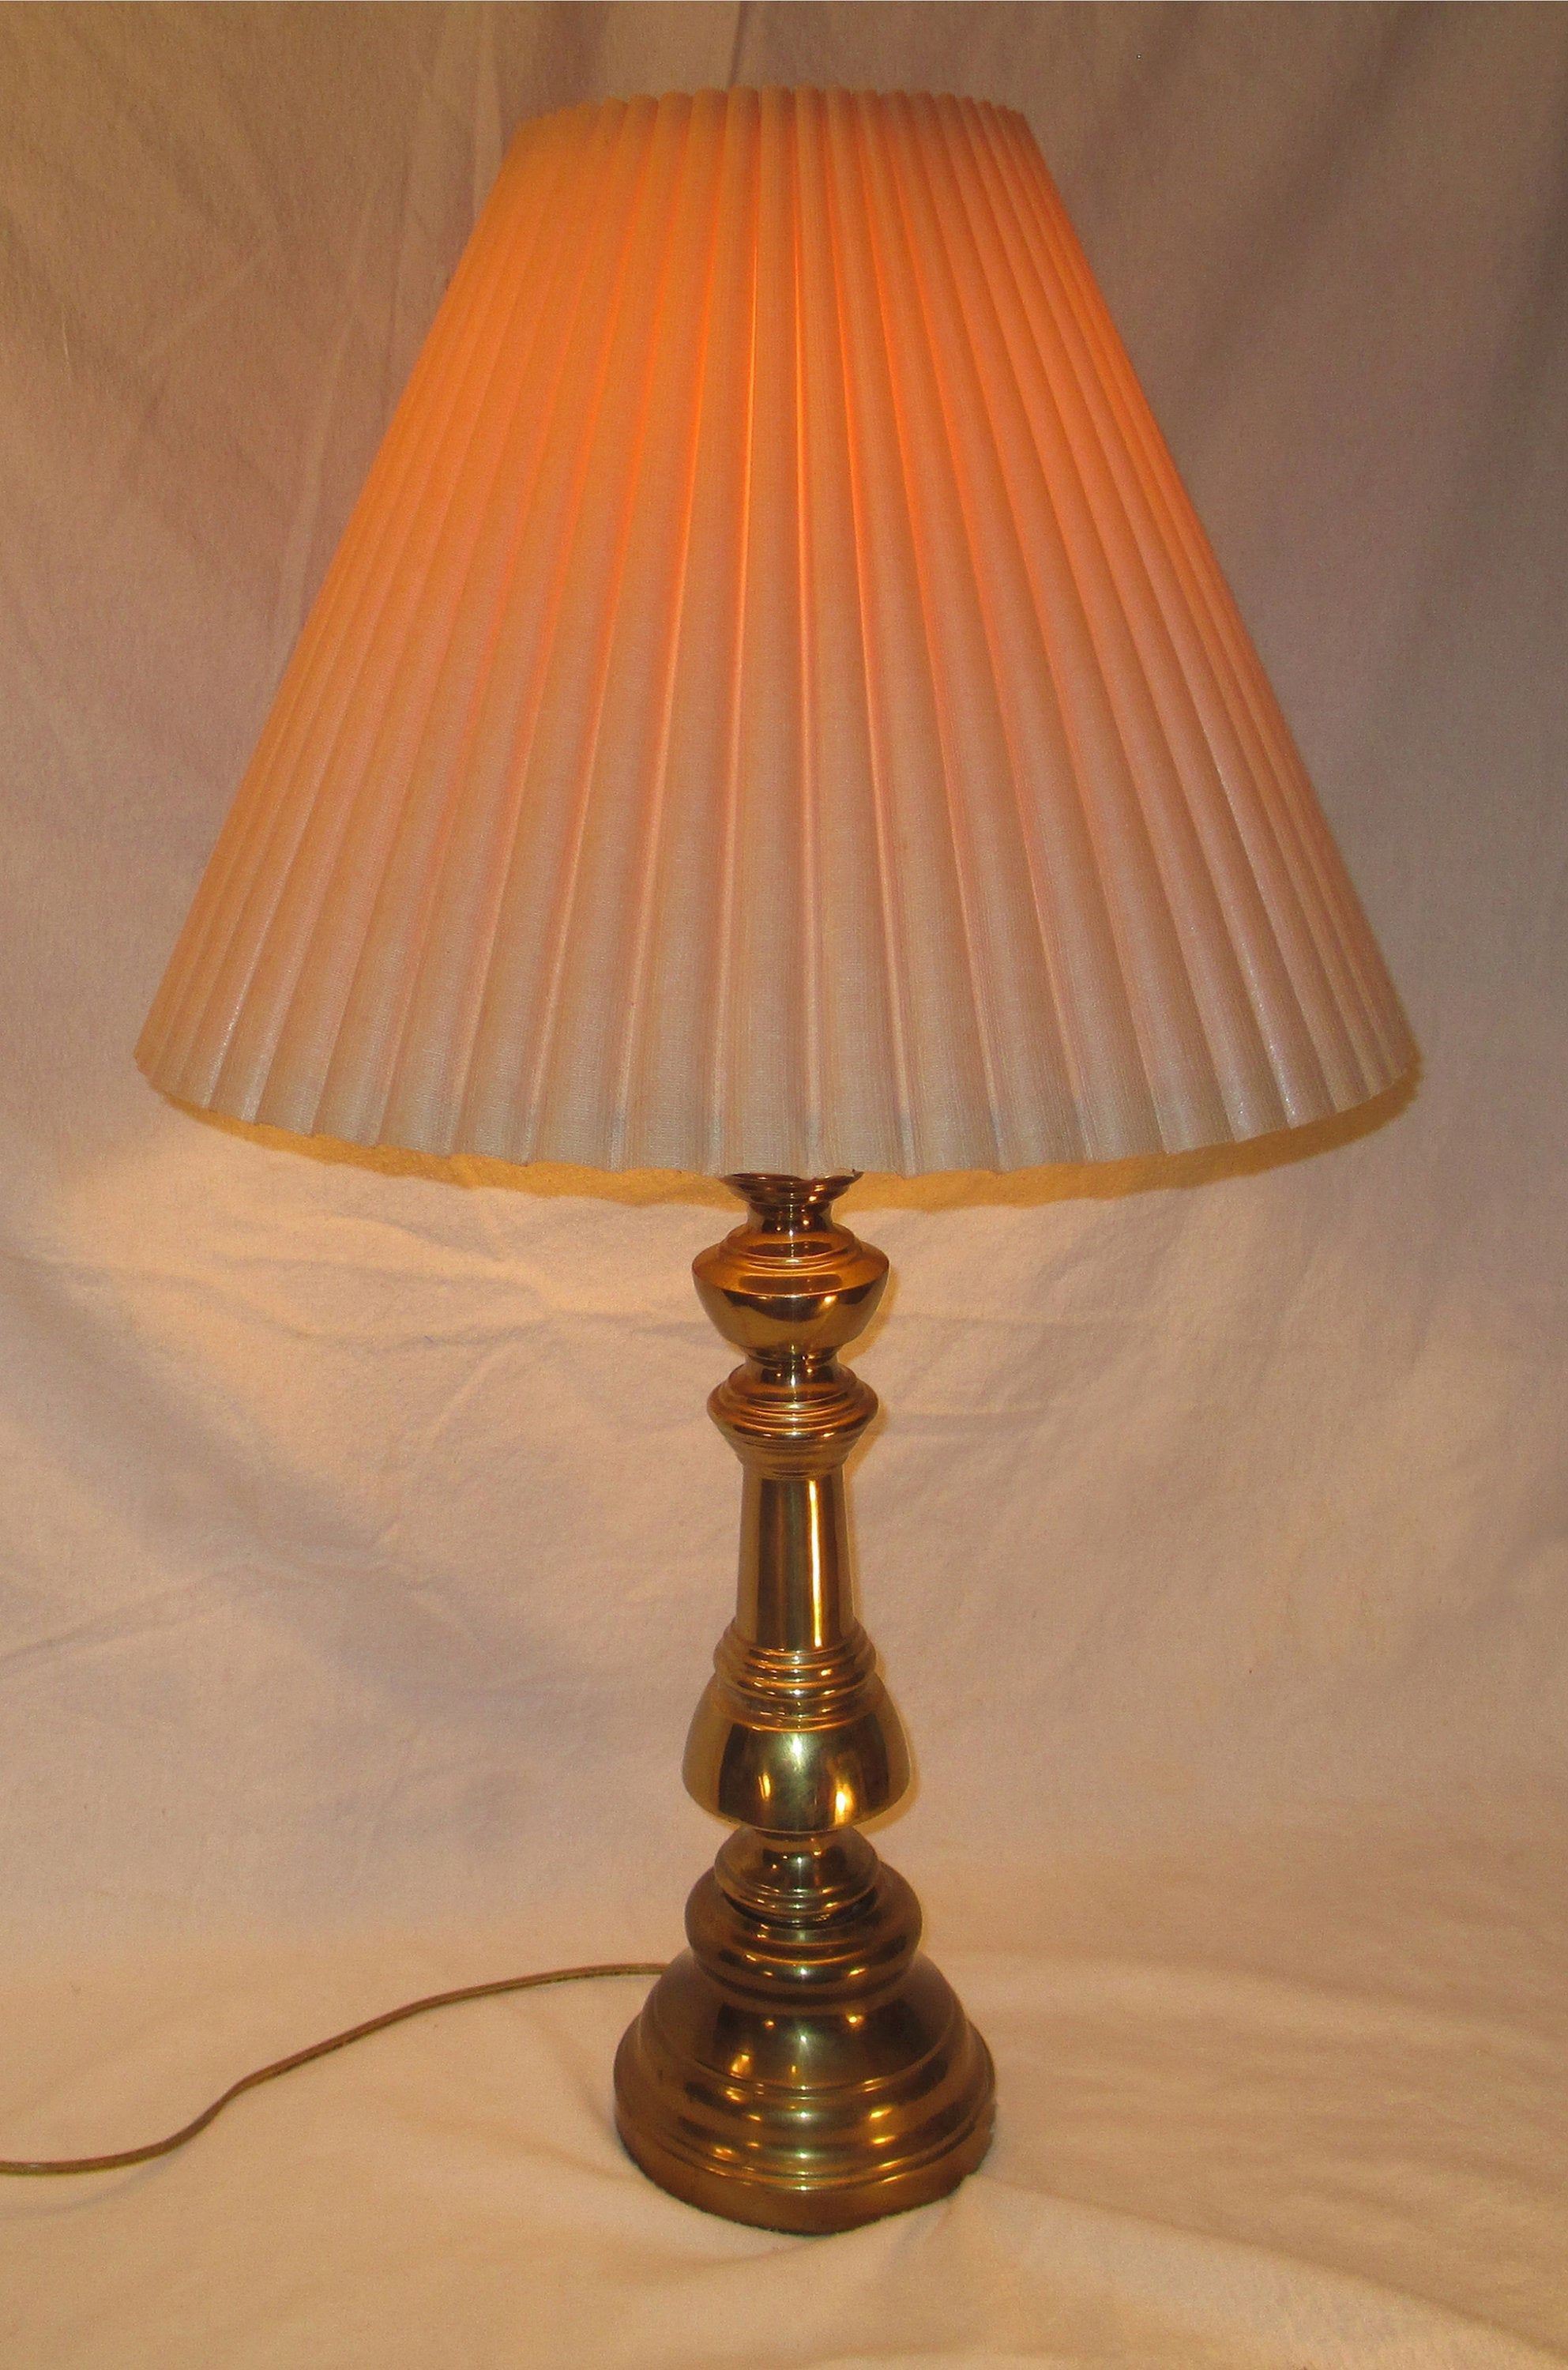 Vintage Table Lamp Brass Stiffel Like With Tan Pleated Shade Etsy In 2020 Vintage Table Lamp Brass Table Lamps Table Lamp